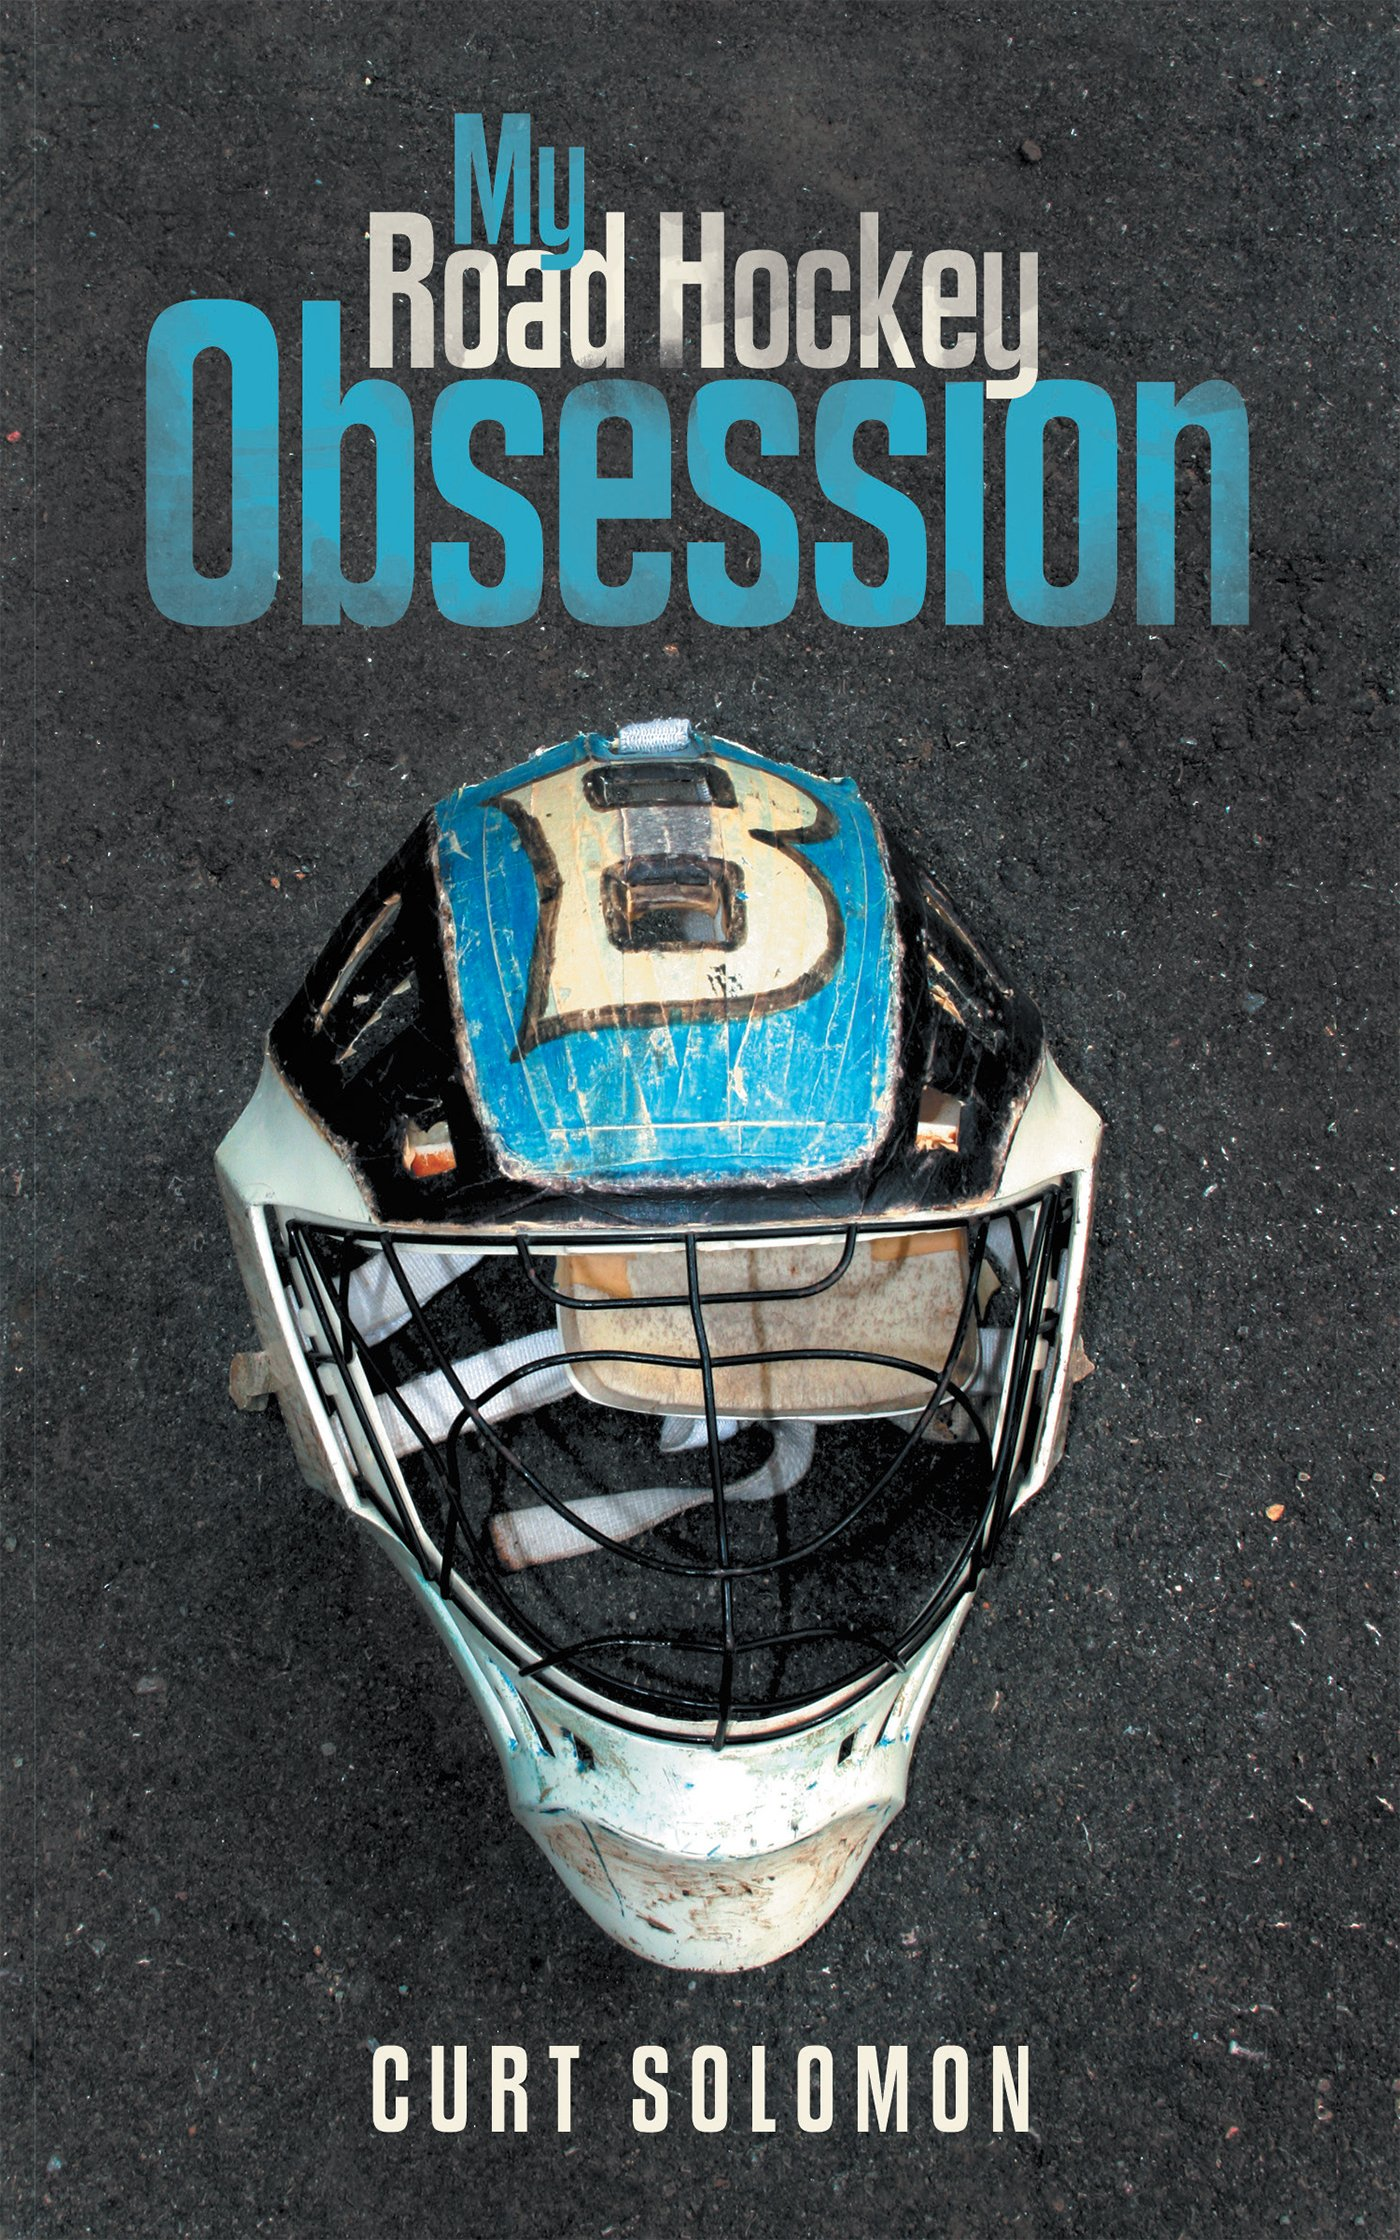 Download My Road Hockey Obsession (English Edition)